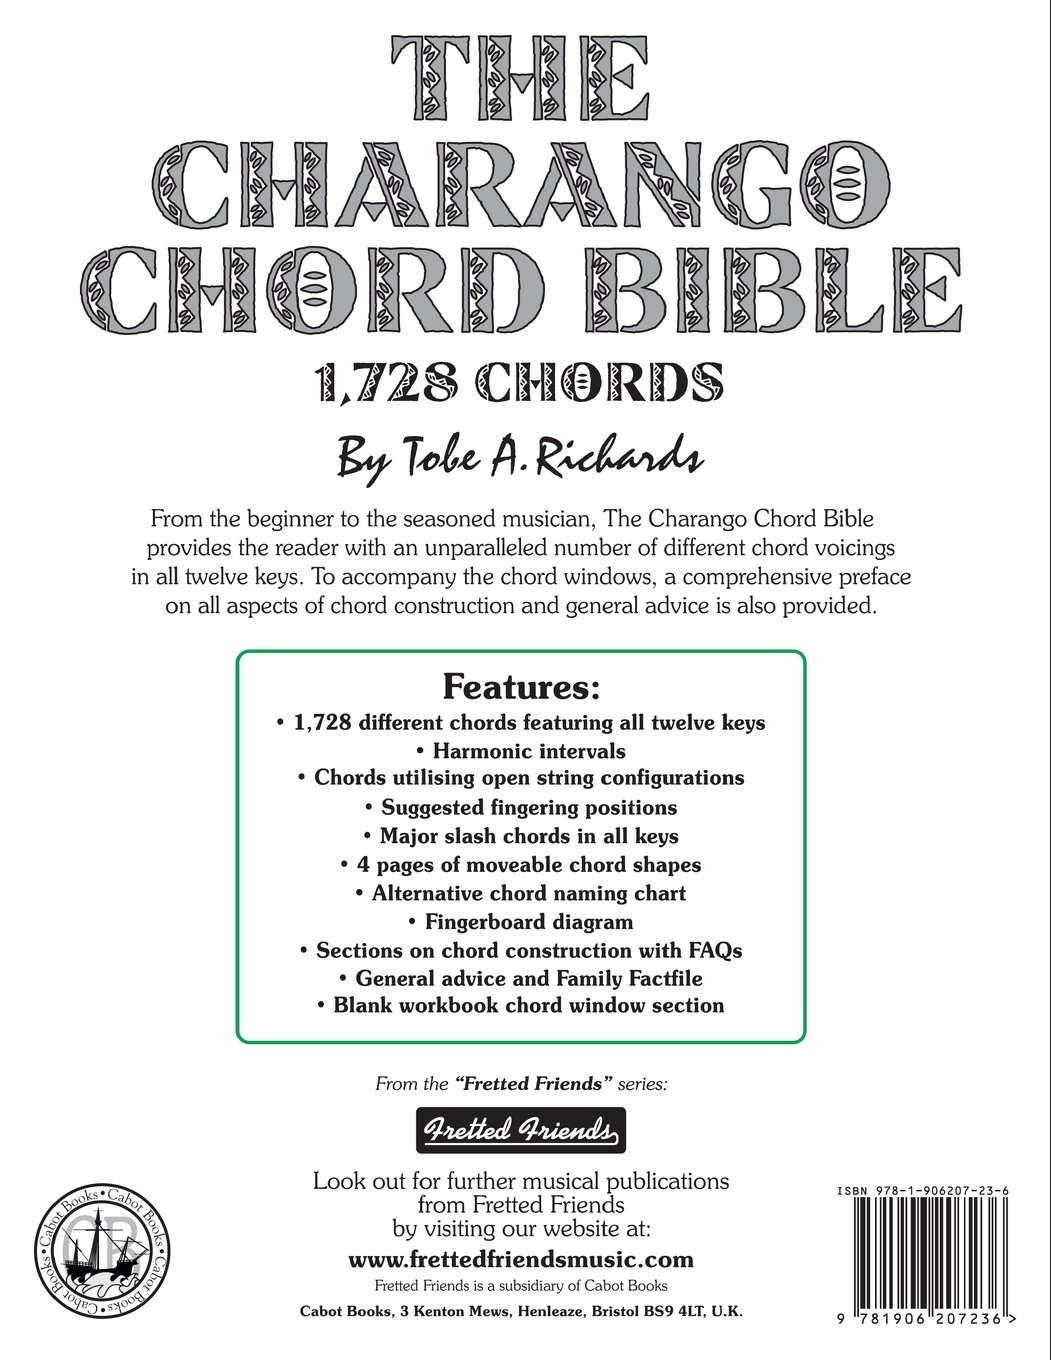 Amazon the charango chord bible gceae standard tuning 1728 amazon the charango chord bible gceae standard tuning 1728 chords fretted friends 9781906207236 tobe a richards books hexwebz Gallery